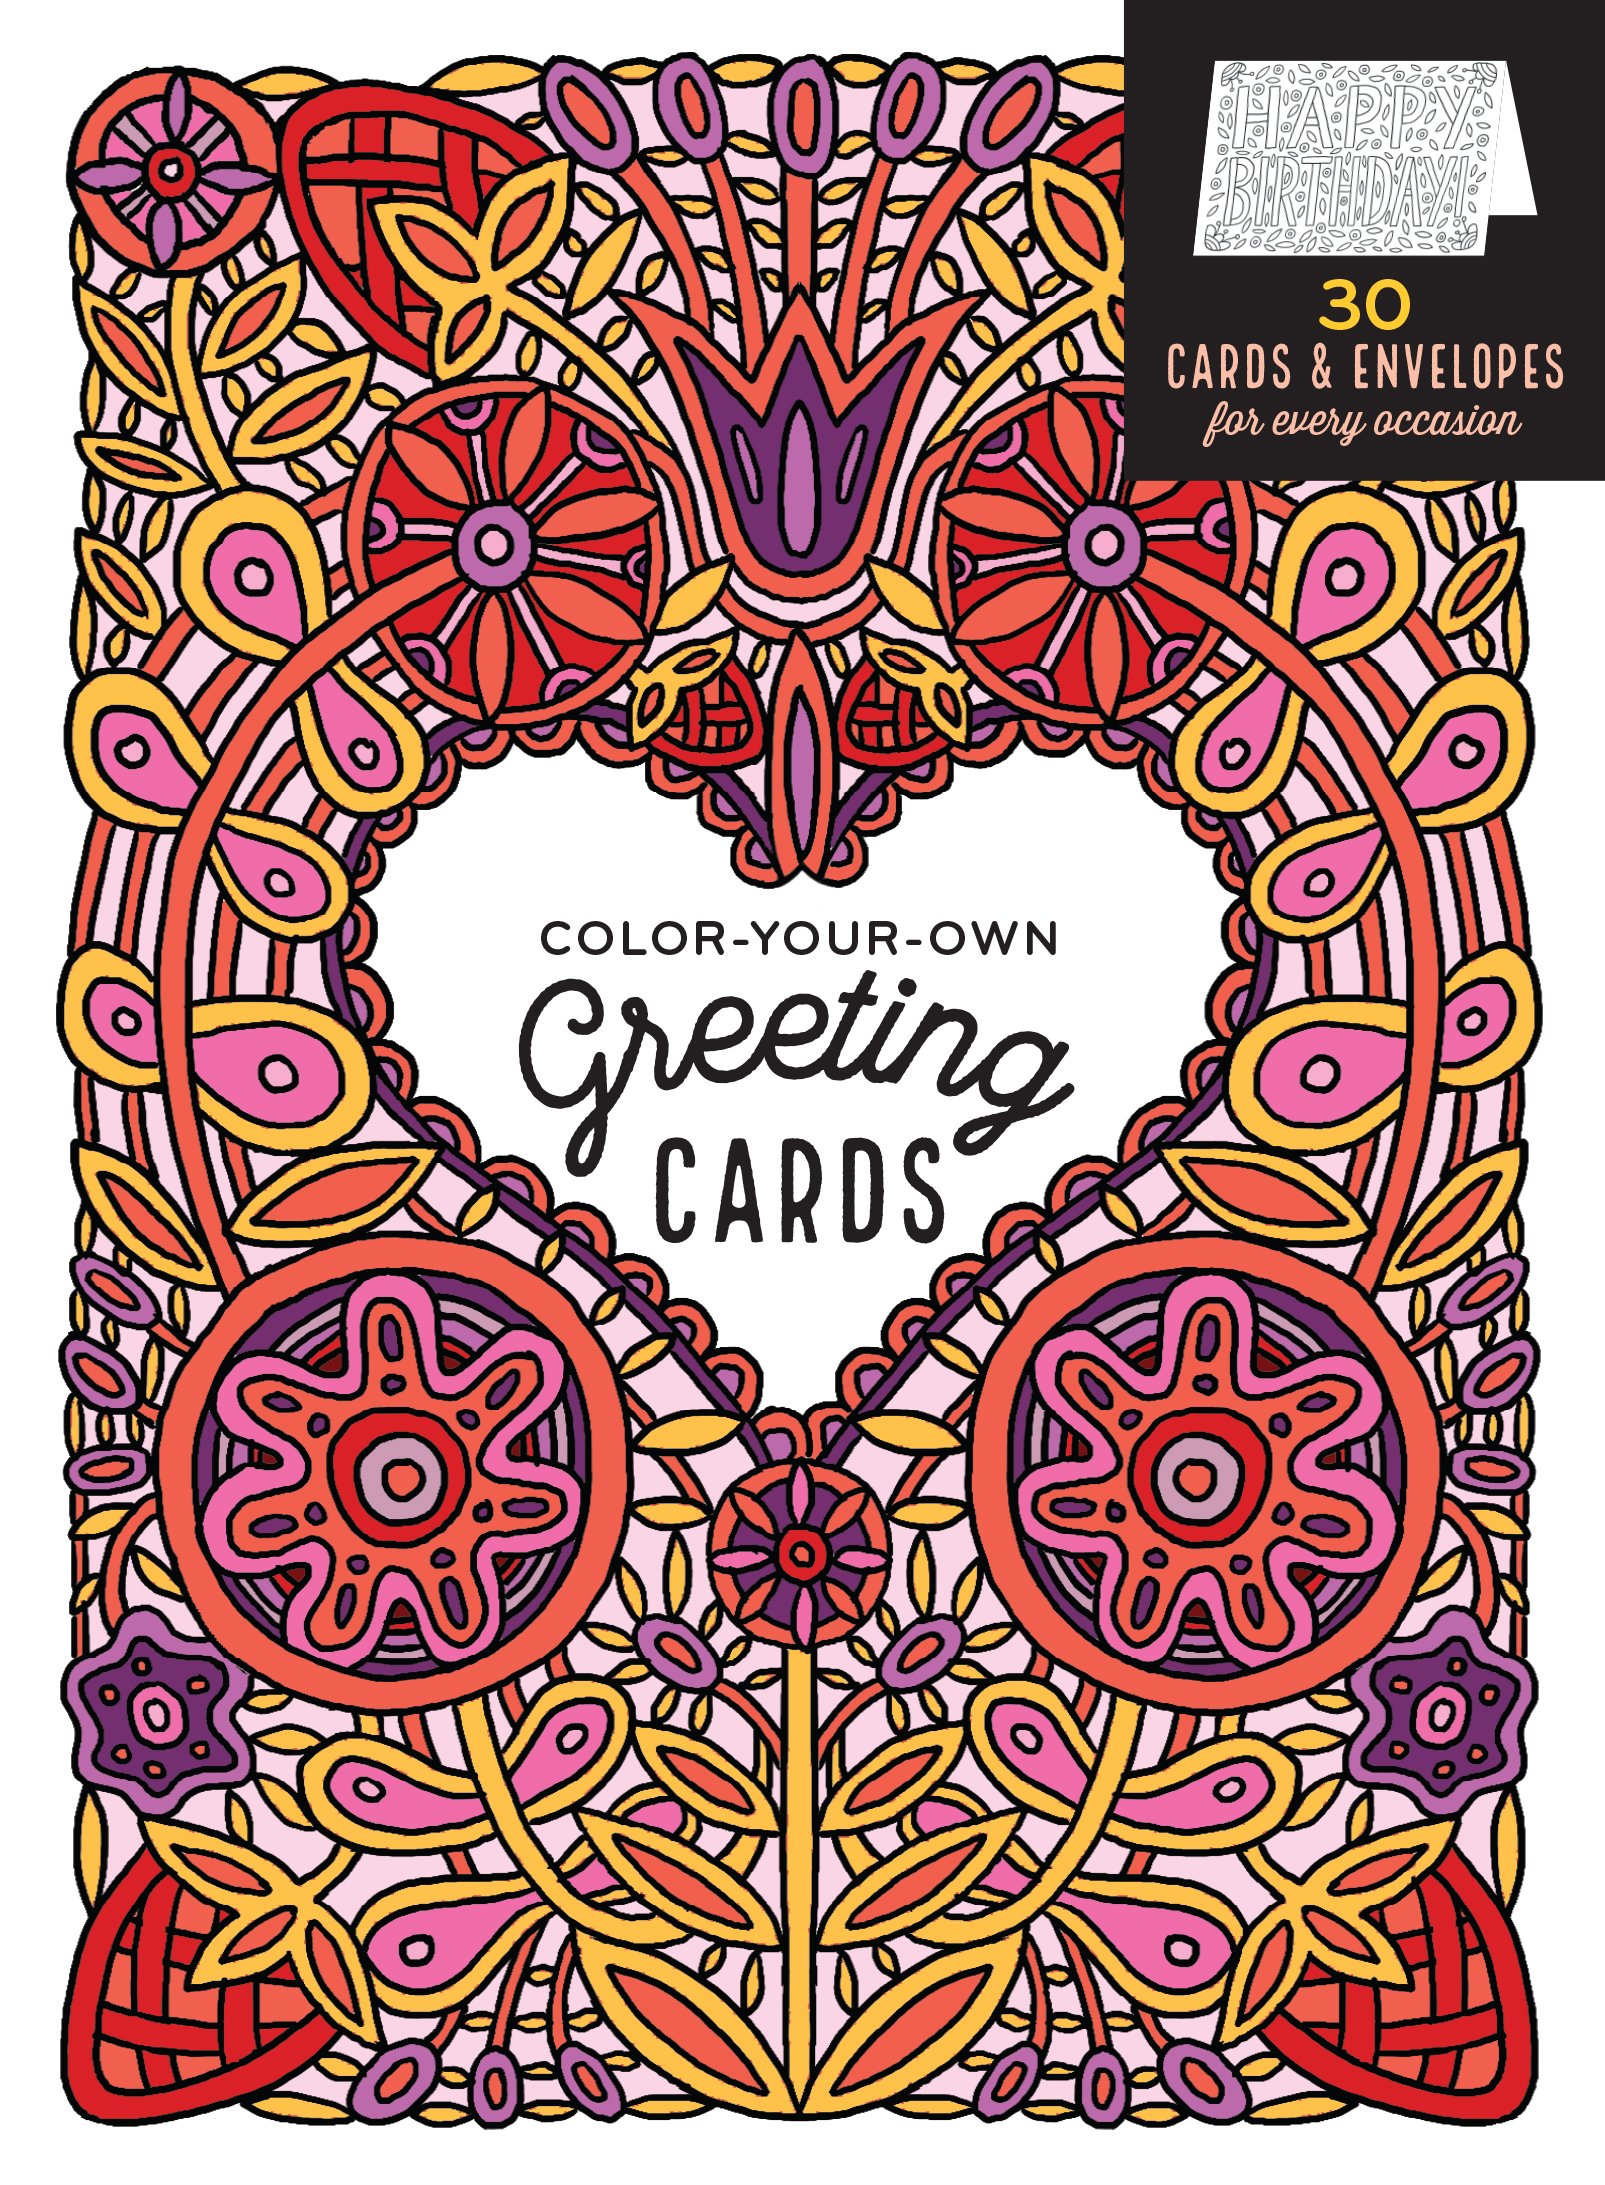 Color-Your-Own Greeting Cards 30 Cards & Envelopes for Every Occasion - Caitlin Keegan